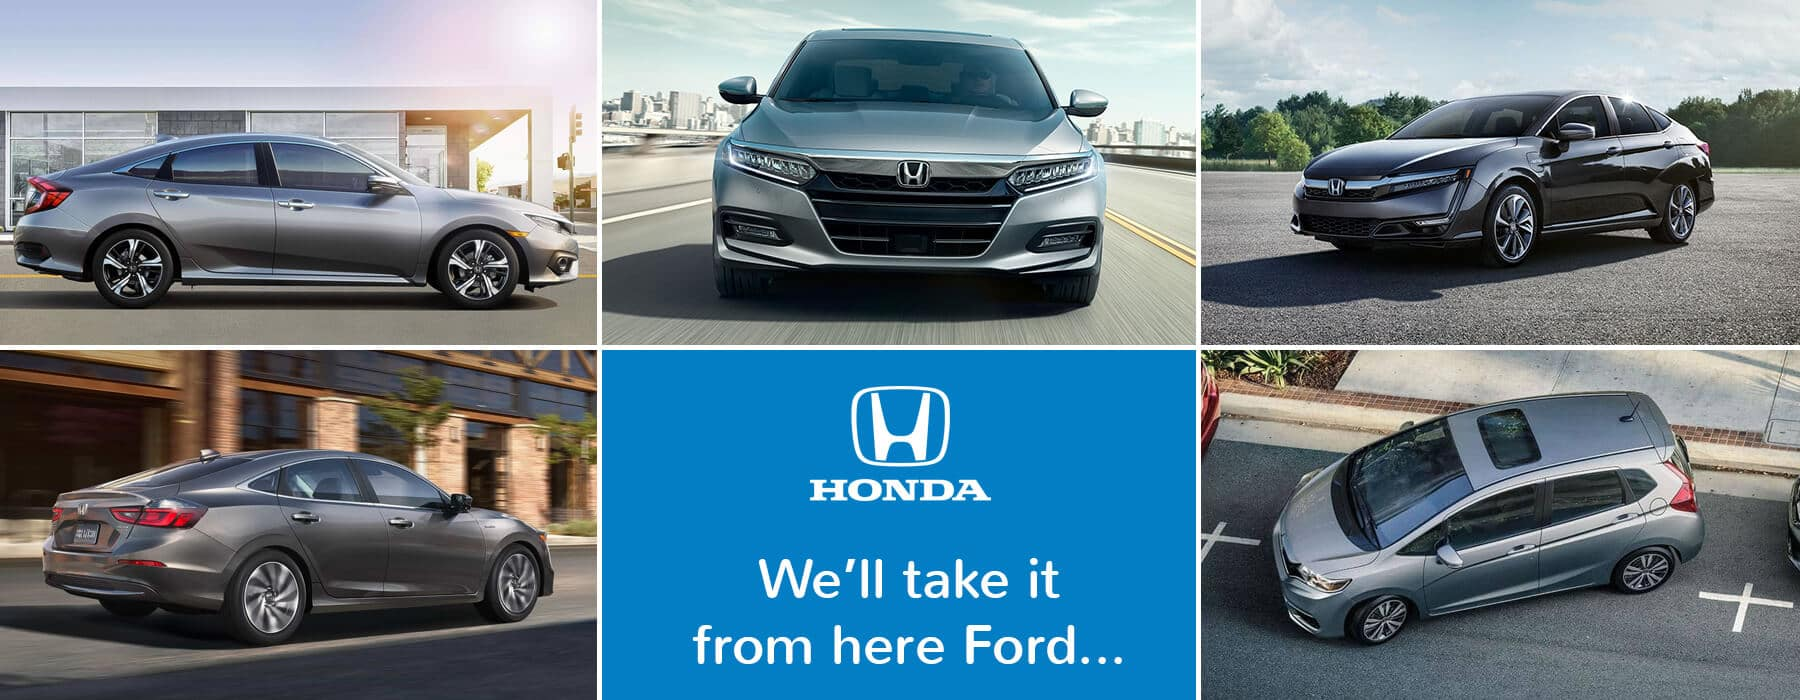 Honda Dealers Illinois >> Ford To Stop Making Sedans And Small Cars Central Illinois Honda